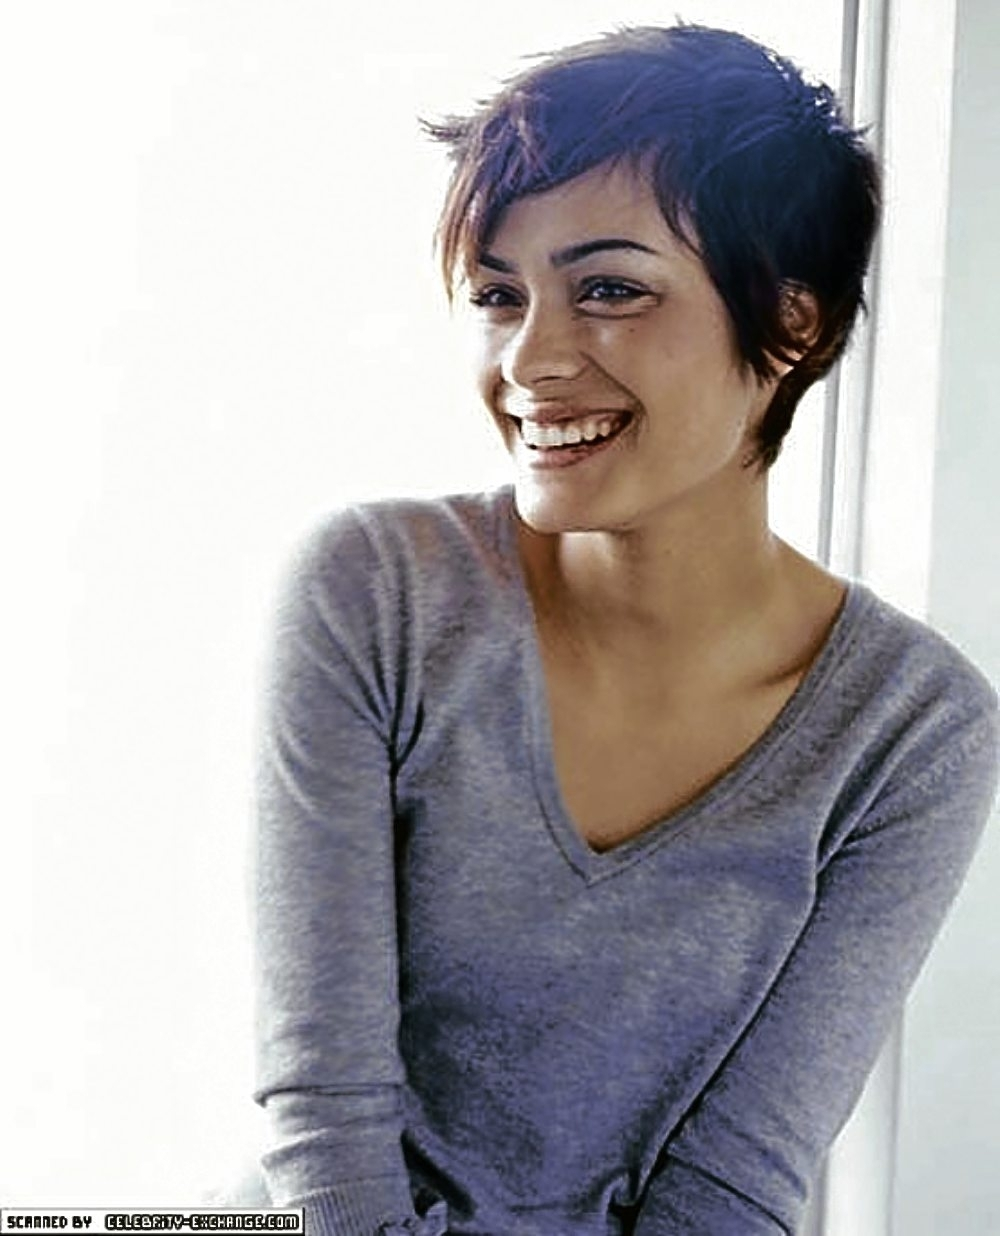 Pixie Haircut For Thick Curly Hair 1000+ Images About Pixie Cut On With Latest Pixie Hairstyles For Thick Curly Hair (View 9 of 15)